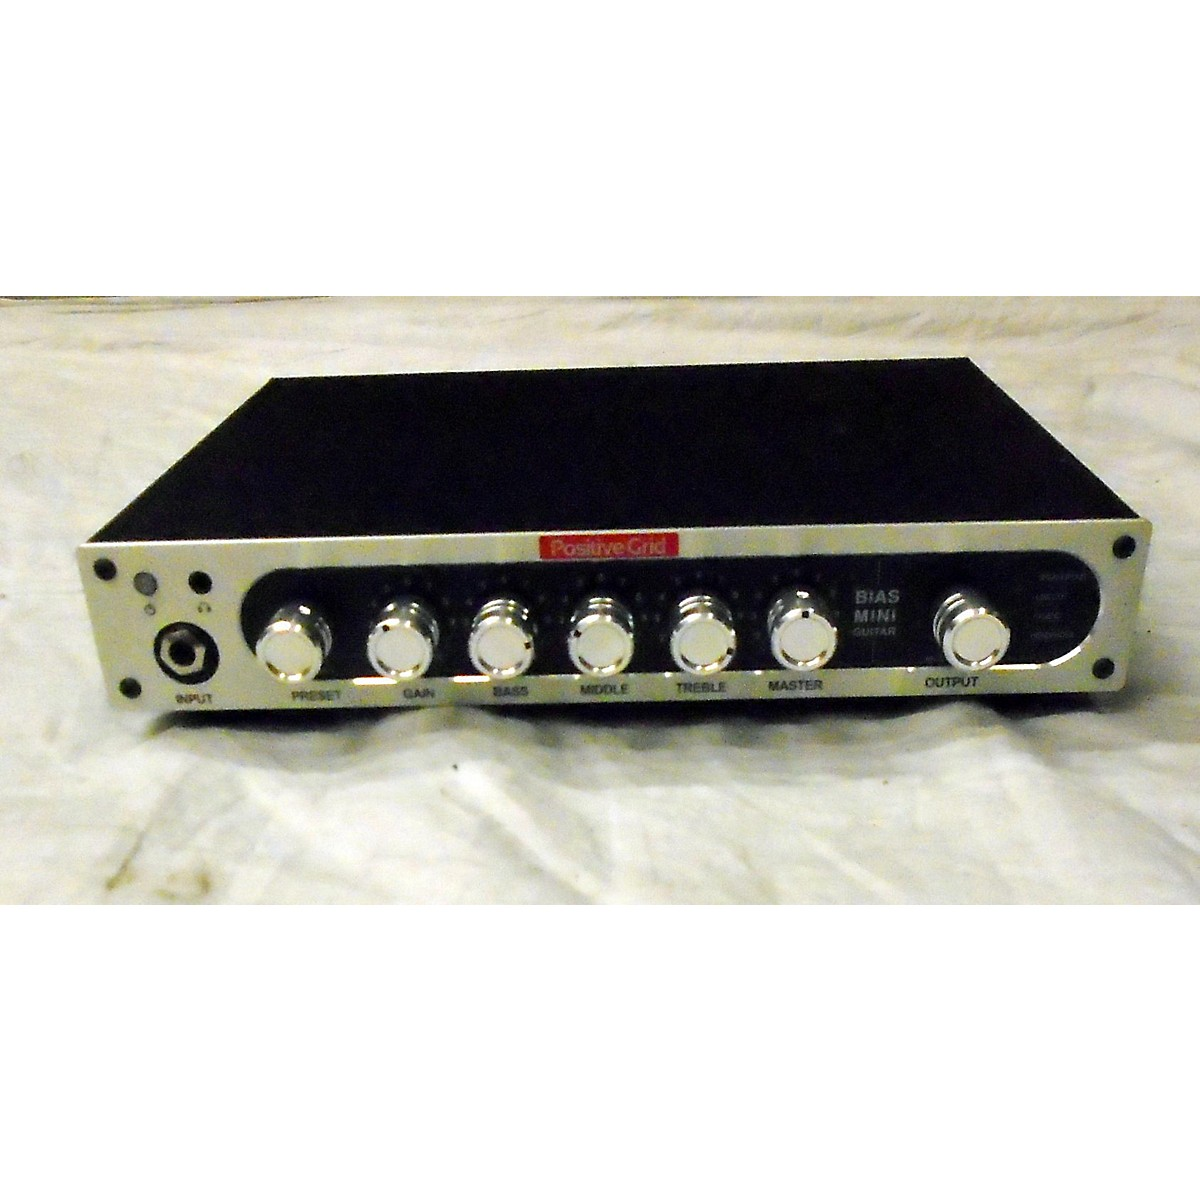 Positive Grid Bias Mini Head Solid State Guitar Amp Head